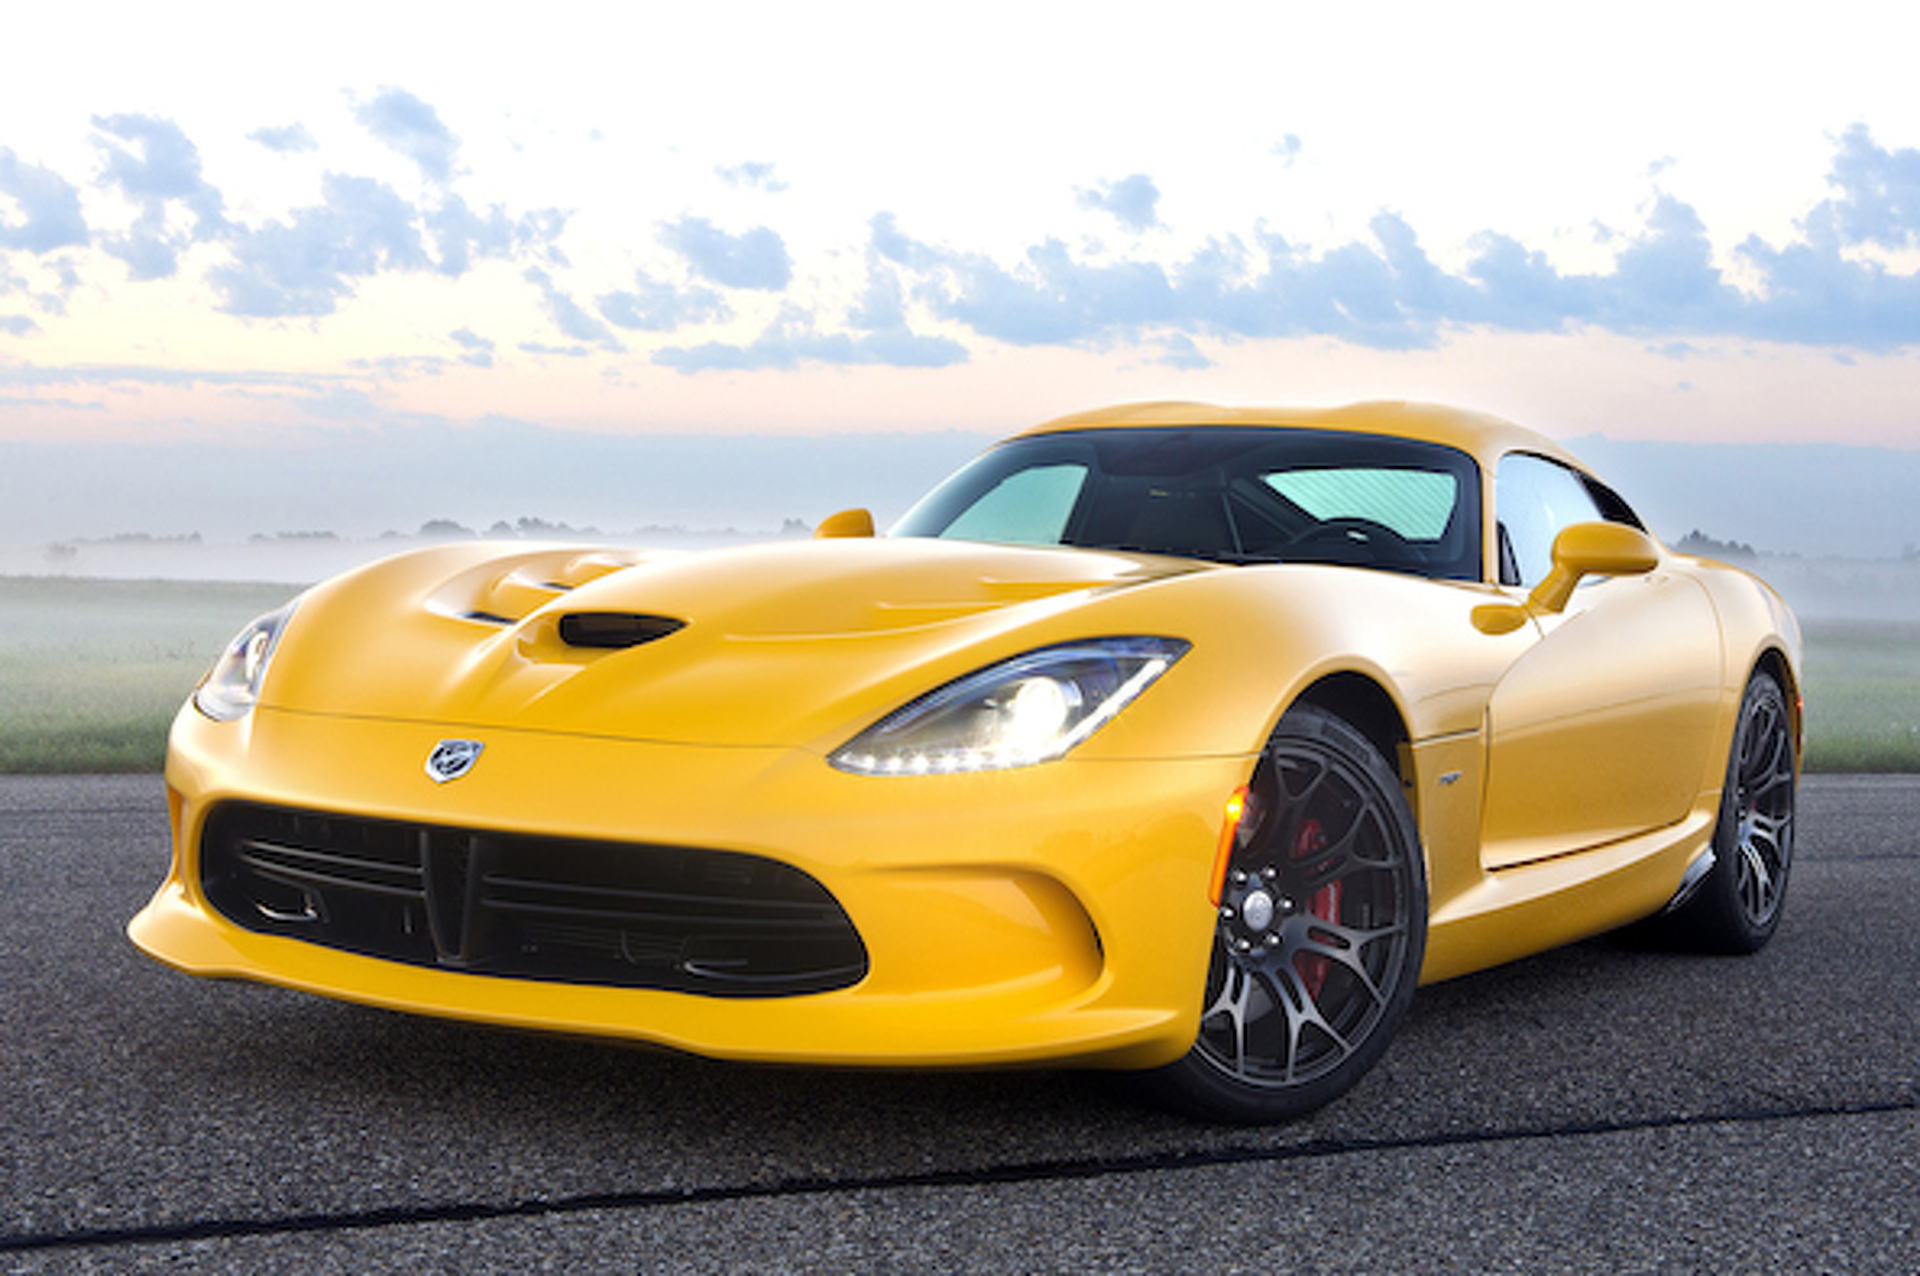 SRT Says No to Automatic, Entry-Level Viper…For Now